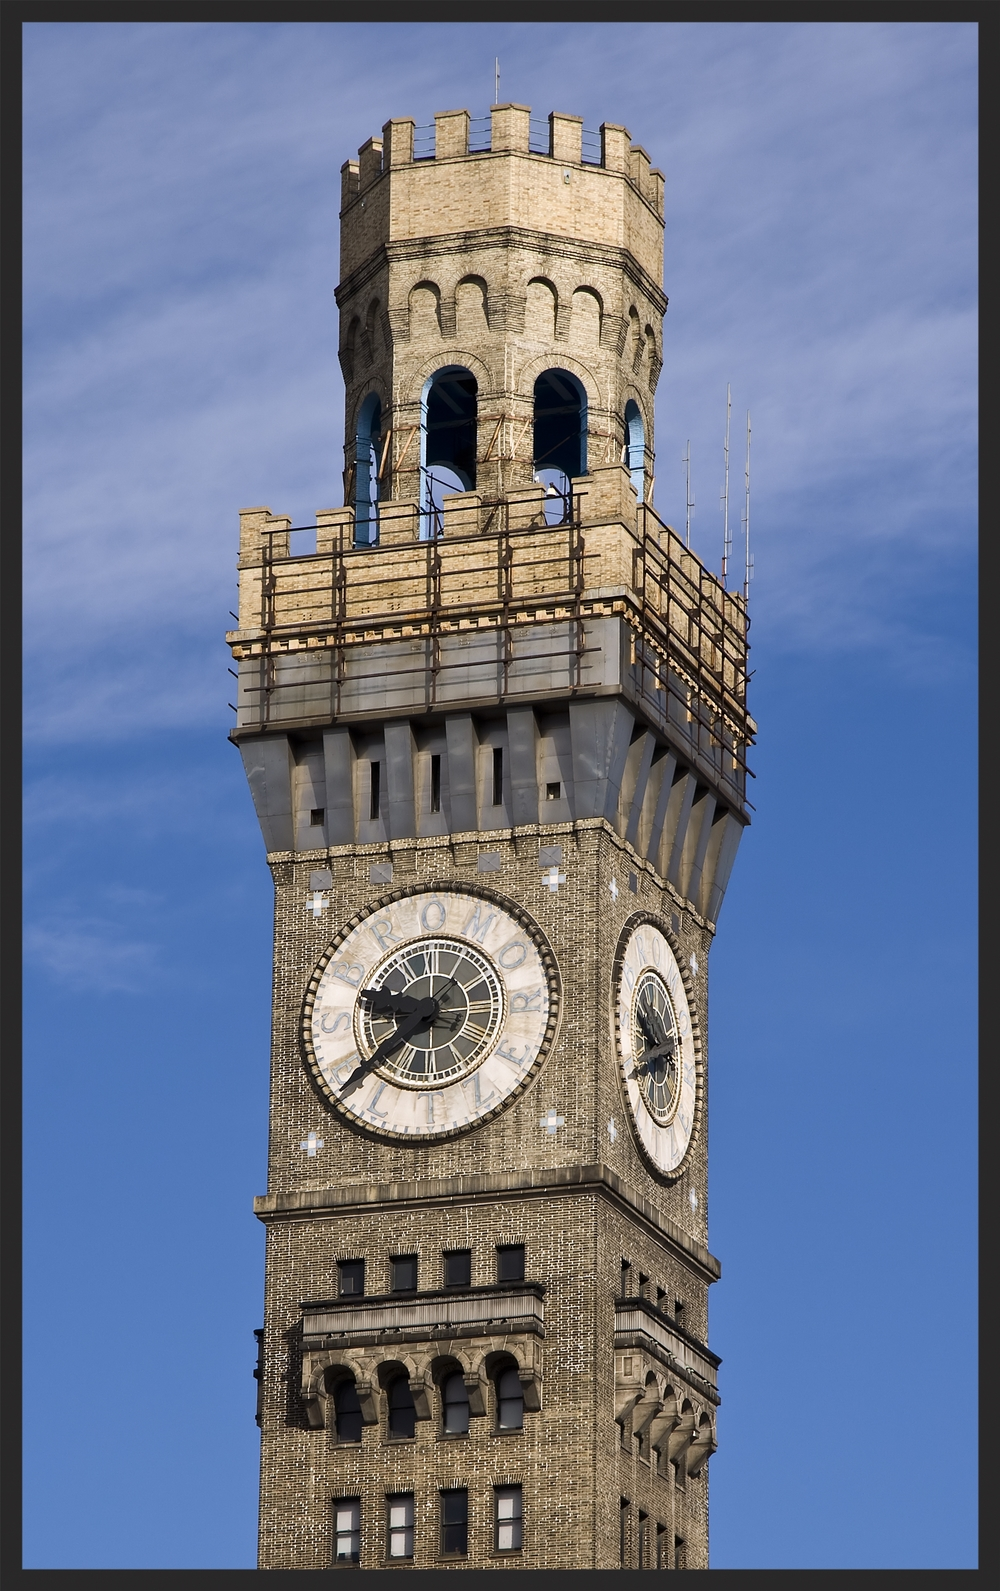 The Emerson Bromo-Seltzer tower is a distinguishing feature of Baltimore's skyline.